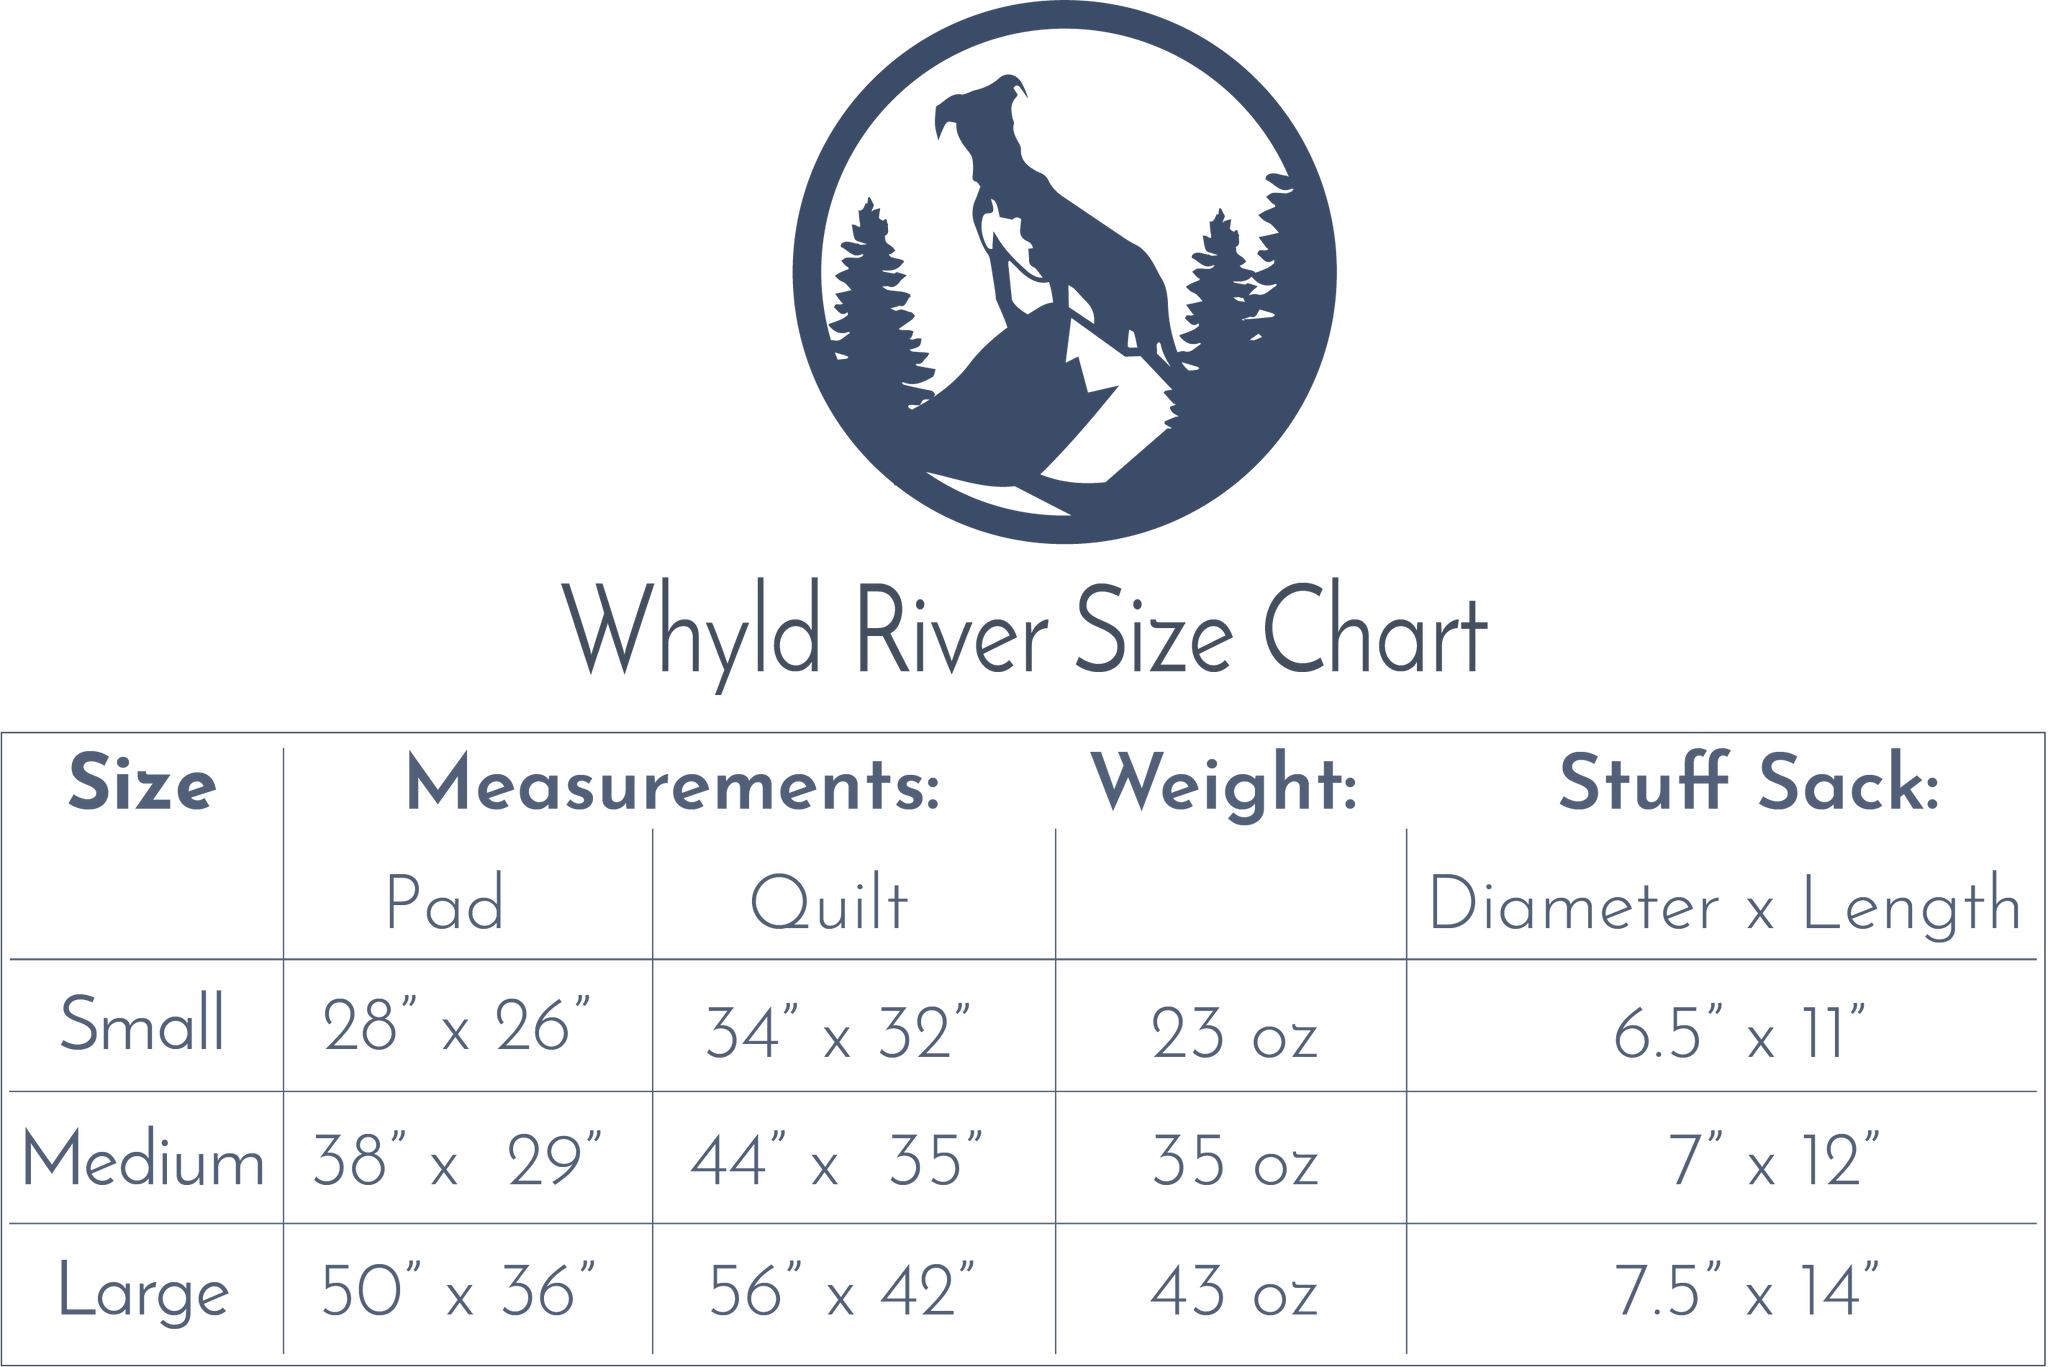 sizing chart for Whyld River doggie sleeping bag for camping backpacking and travel